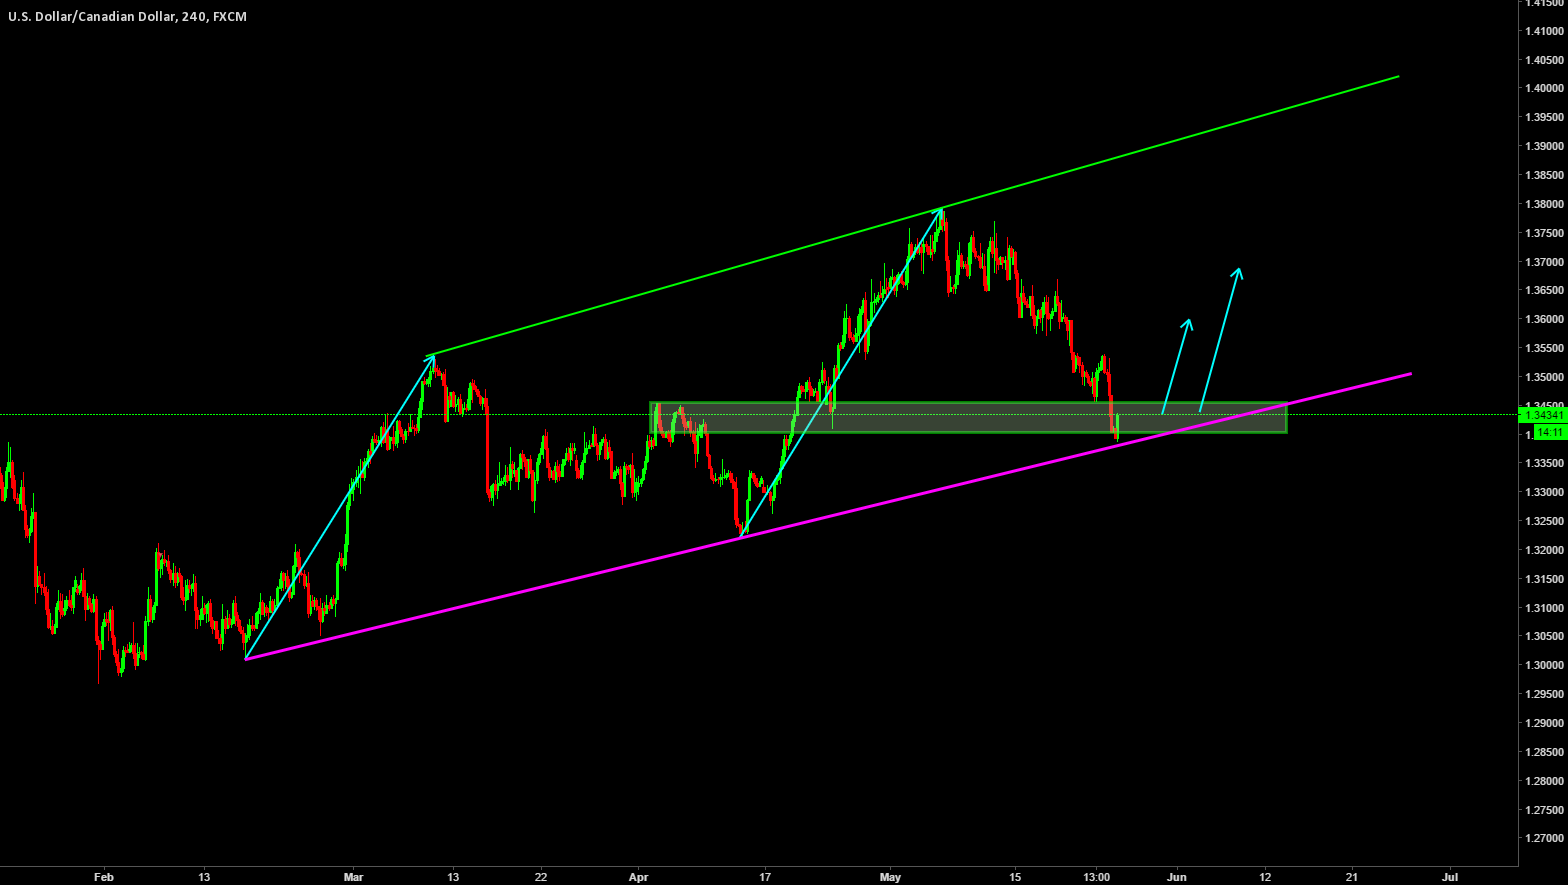 USDCAD / H4